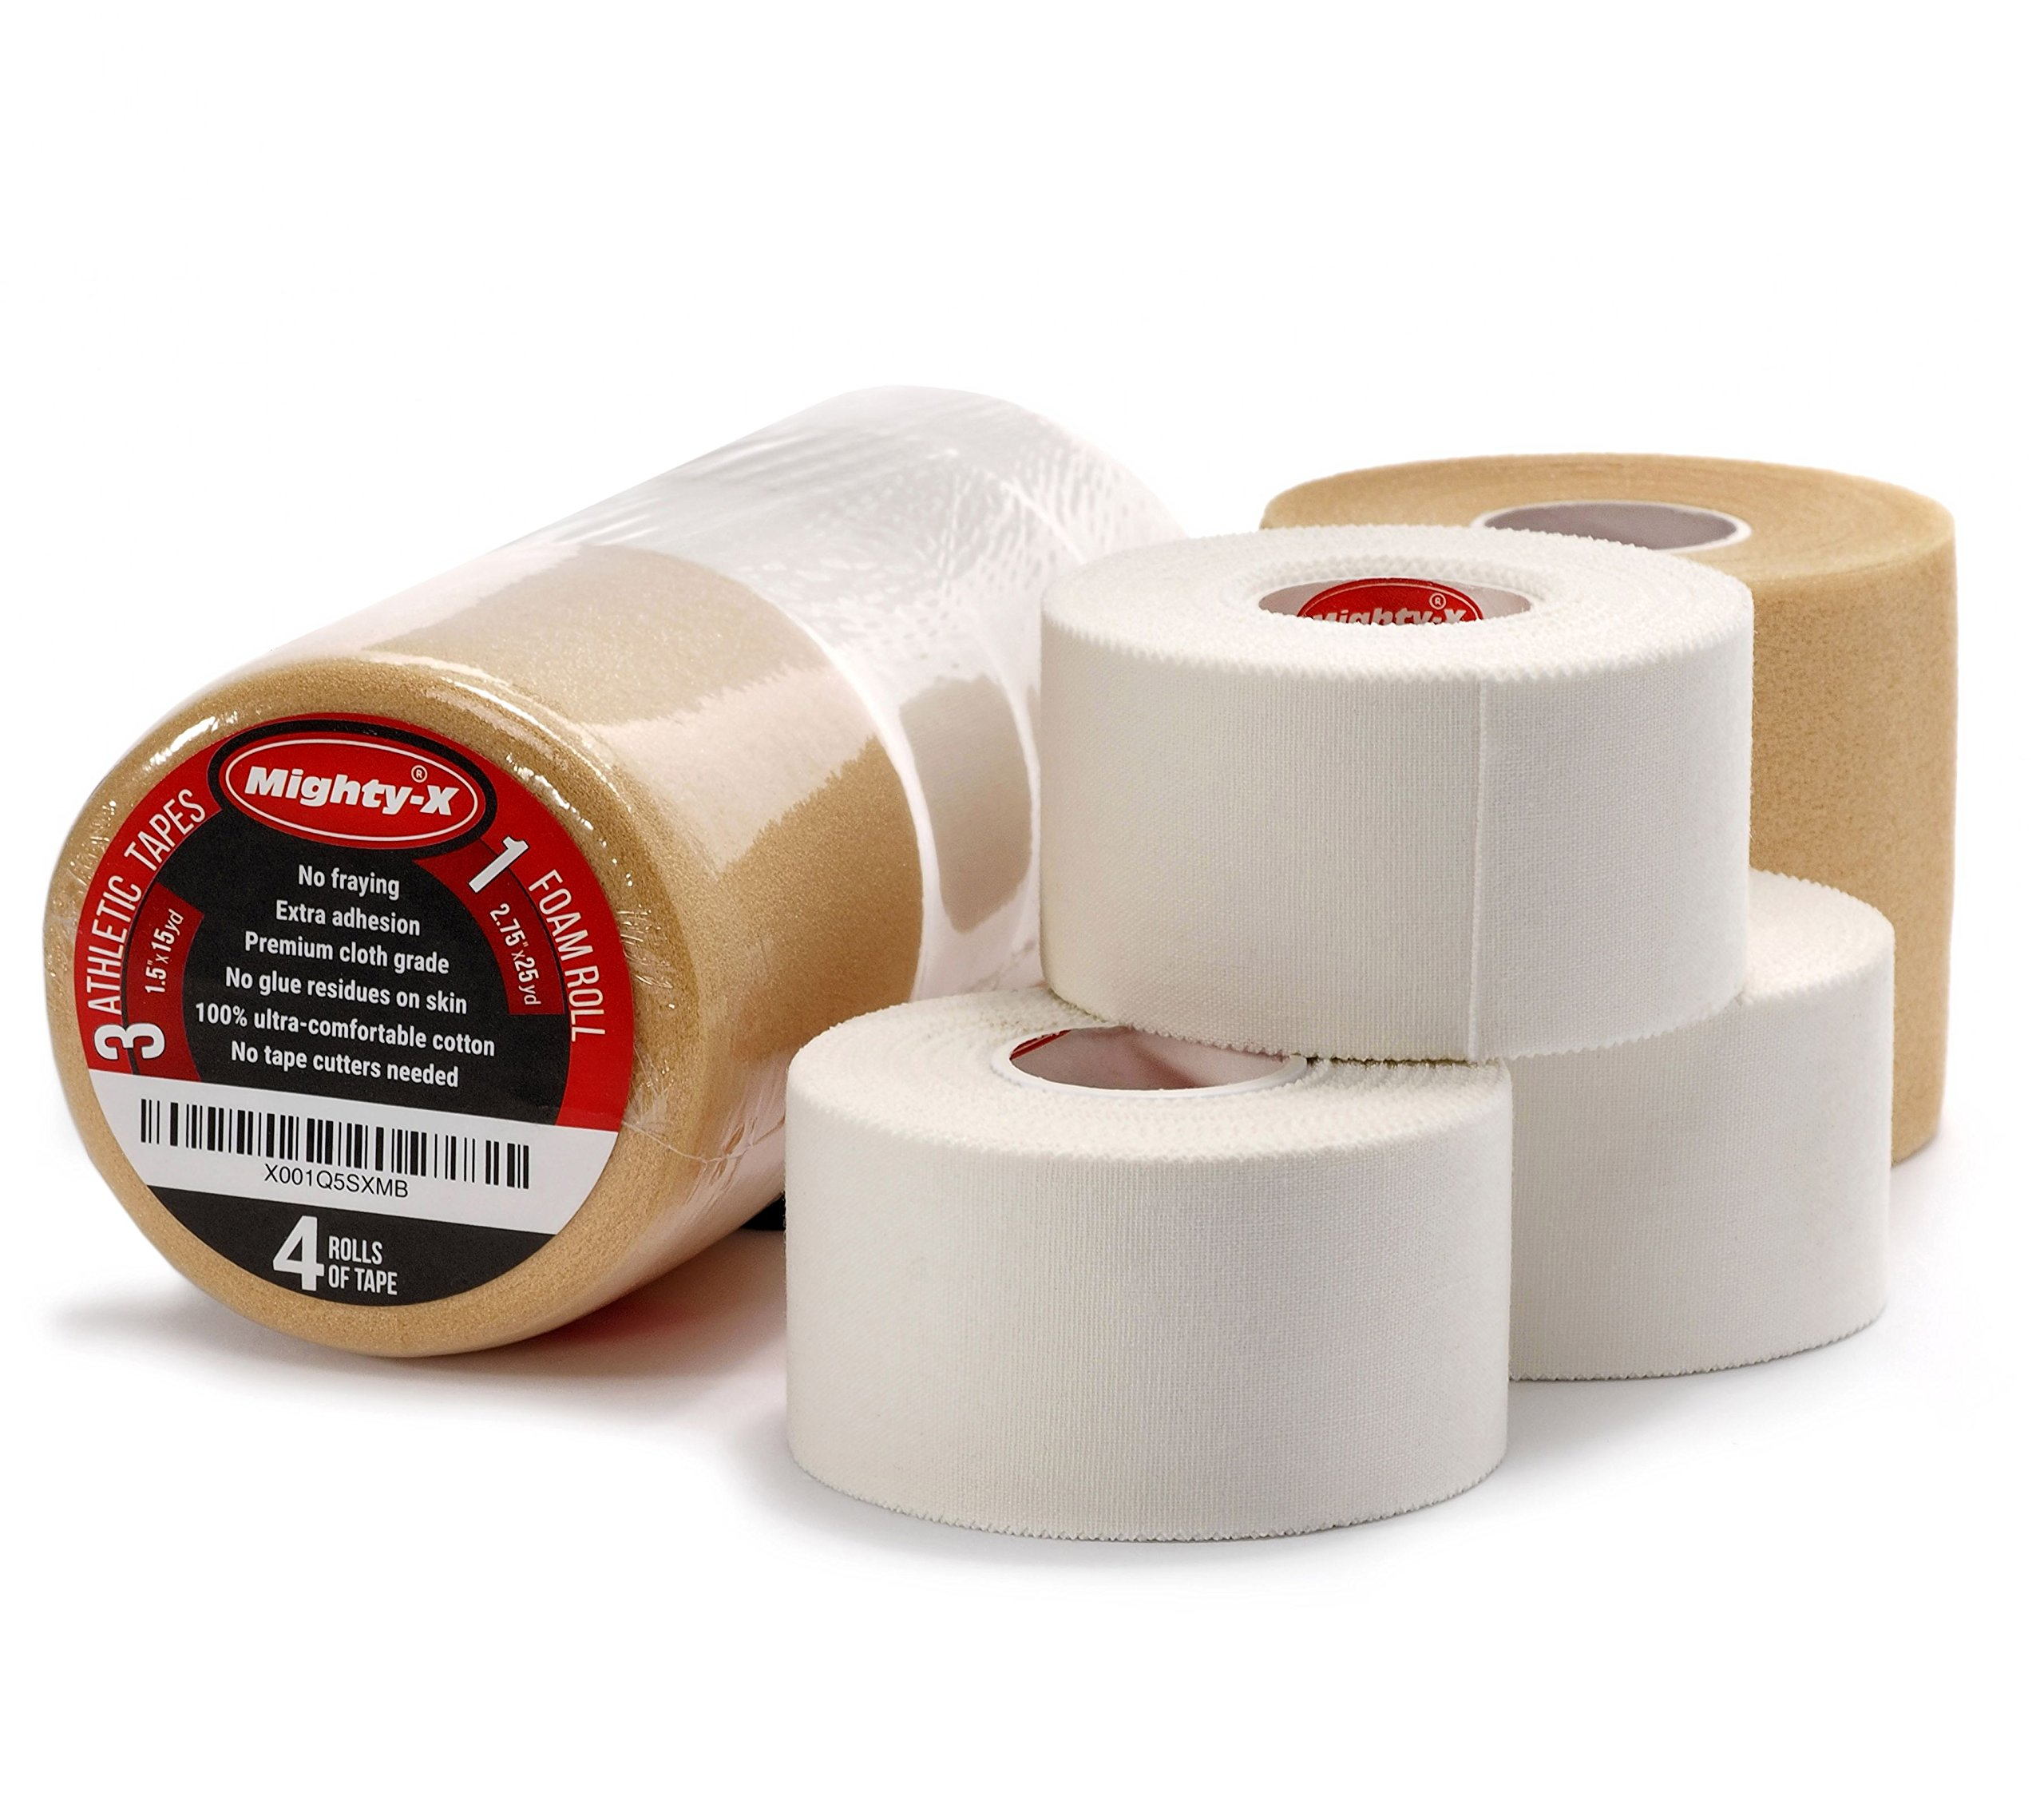 Premium Athletic Tape - 3 Cotton Sport Tape + 1 PreWrap - Sports tape Set - Climbing Tape - Climbing Tape - Boxing Tape - Athletic Tape White - Sports Tape Athletic - Ankle Tape Knee Tape Wrist Tape